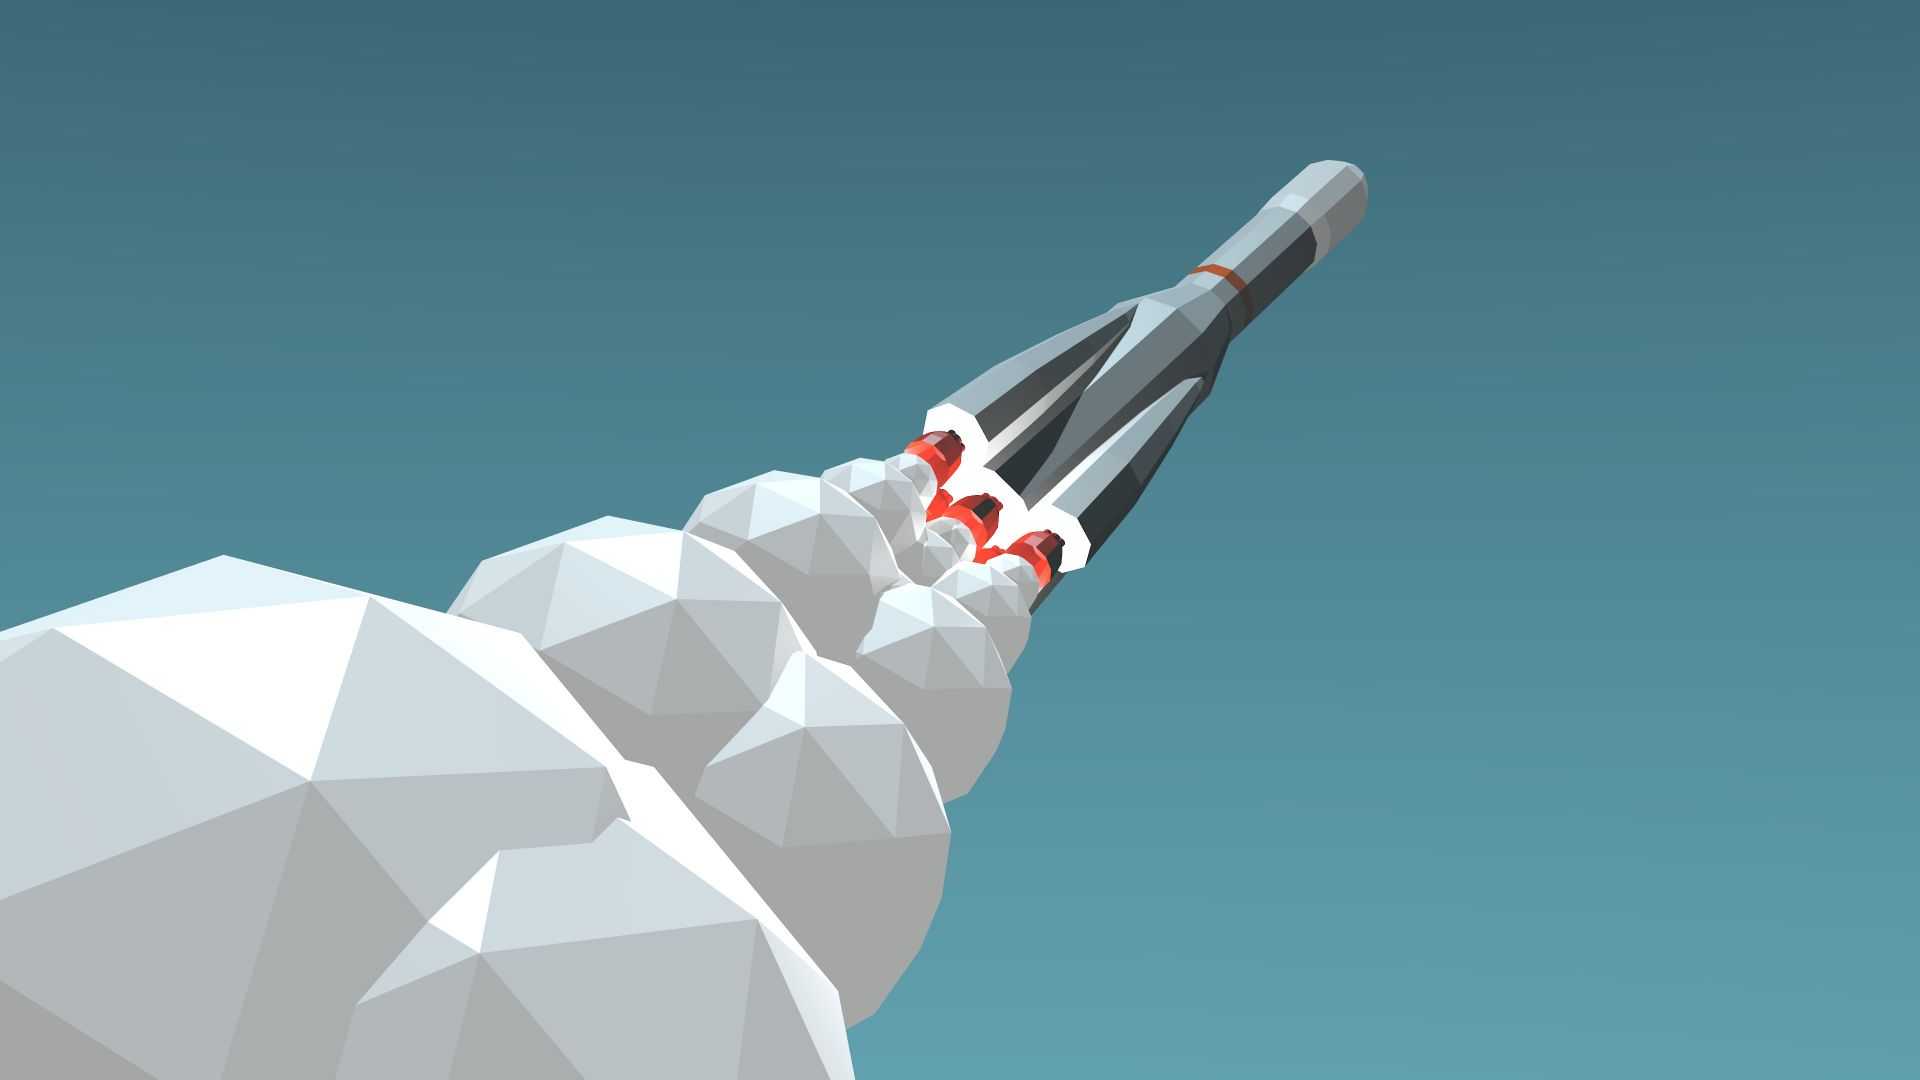 rocket launch, 4k, 5k, iphone wallpaper, low poly, minimalism, blue (horizontal)